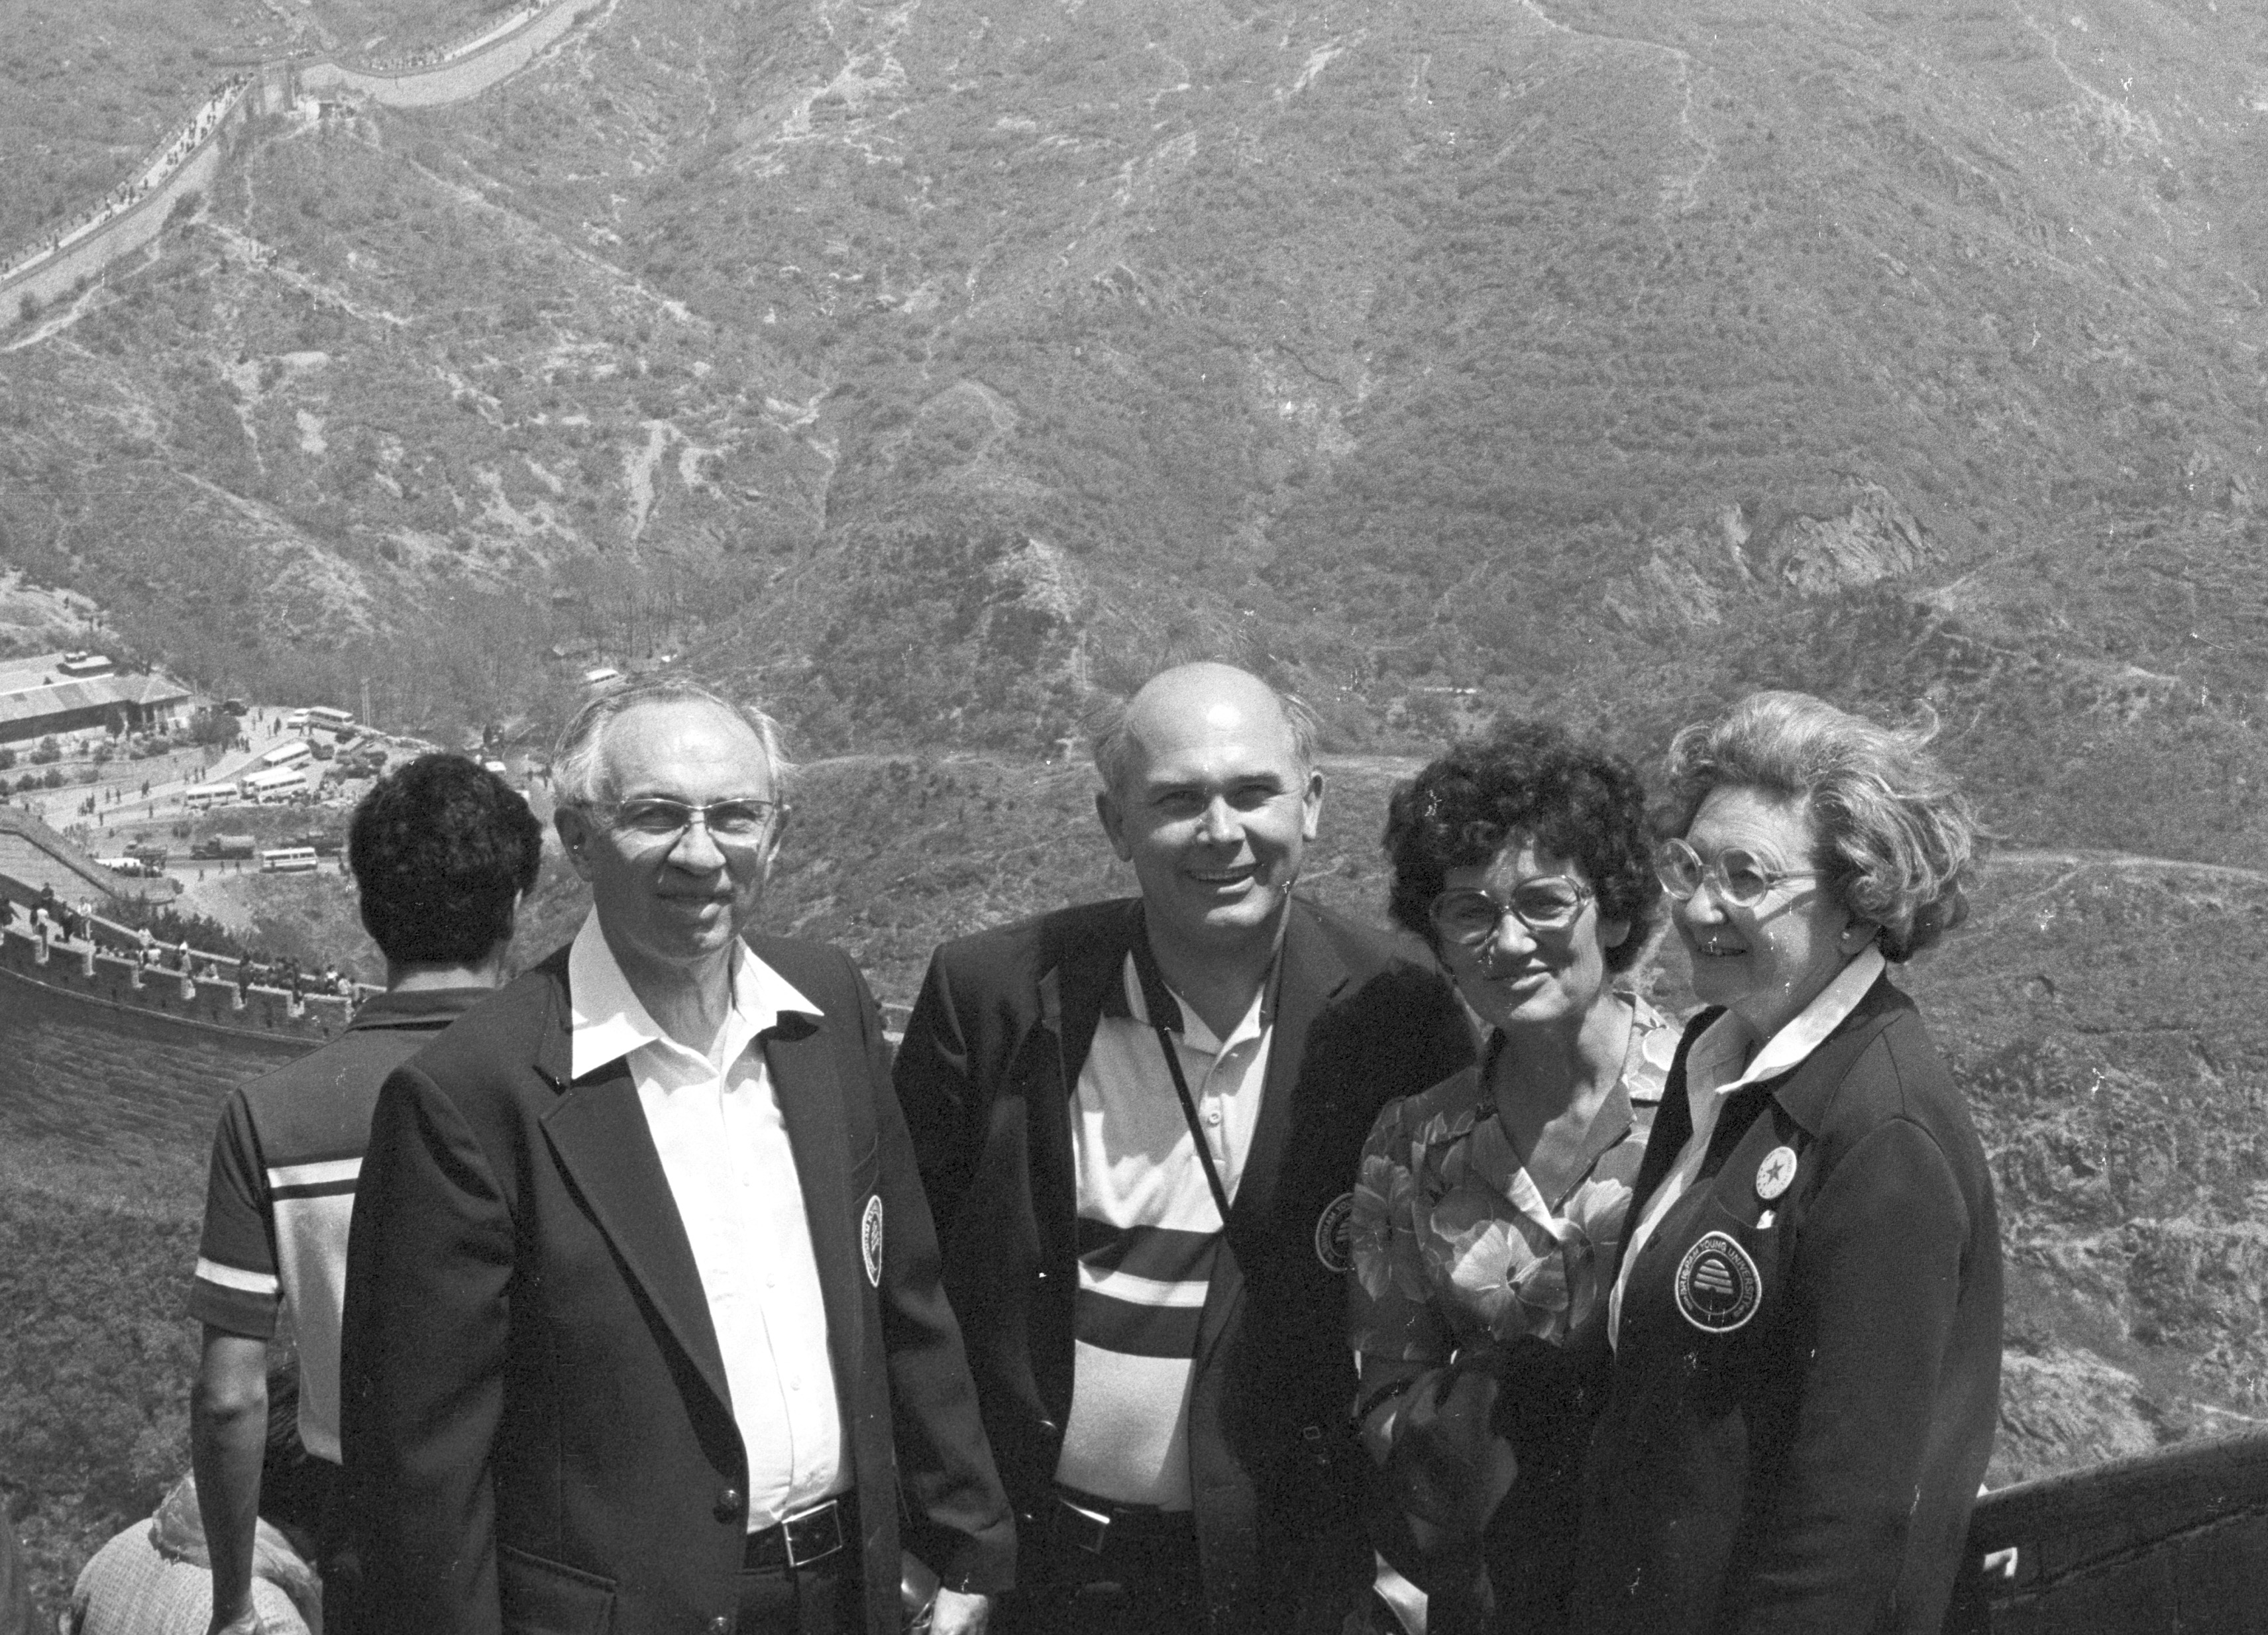 Gordon B. Hinckley, BYU President Dallin H. Oaks, Sister June Dixon Oaks, Sister Marjorie Peay Hinckley pose for a photo during the BYU Young Ambassador tour to China in April 1980.